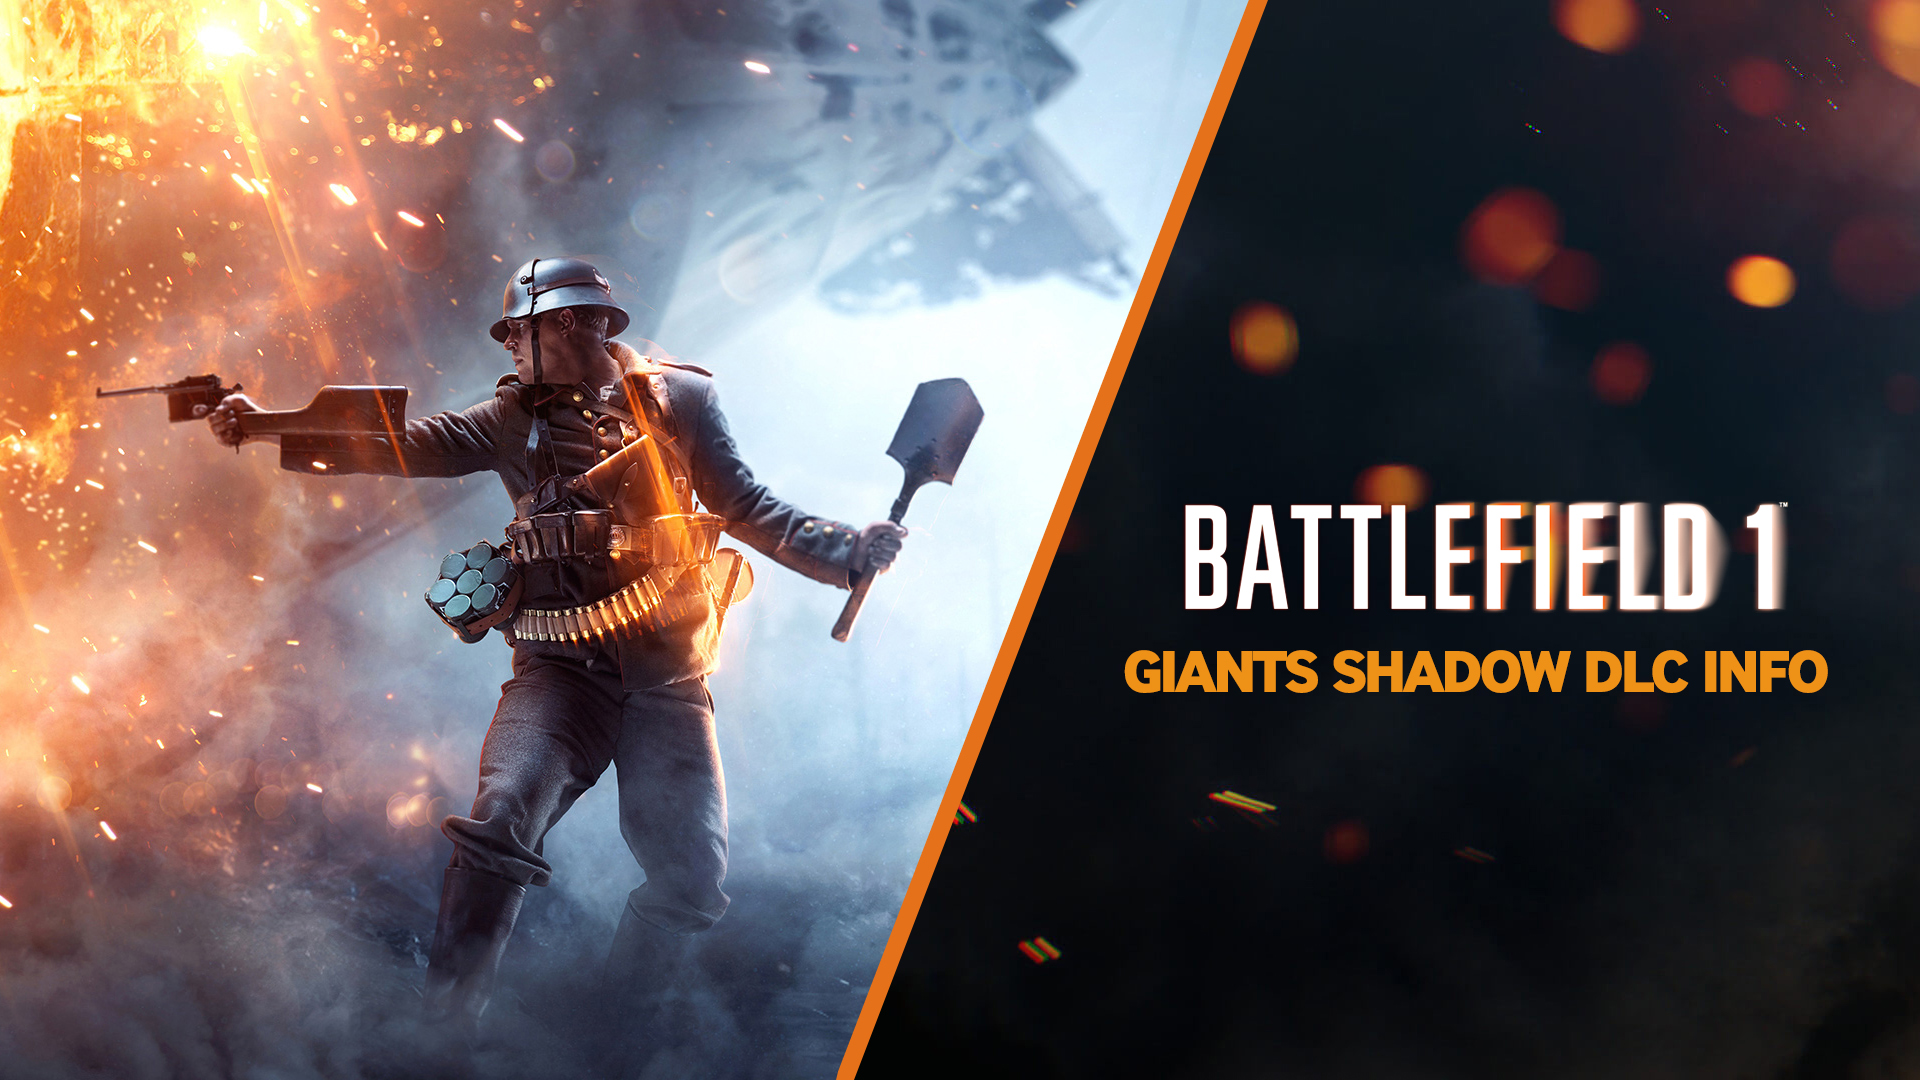 Battlefield 1 DLC Giant's Shadow is coming